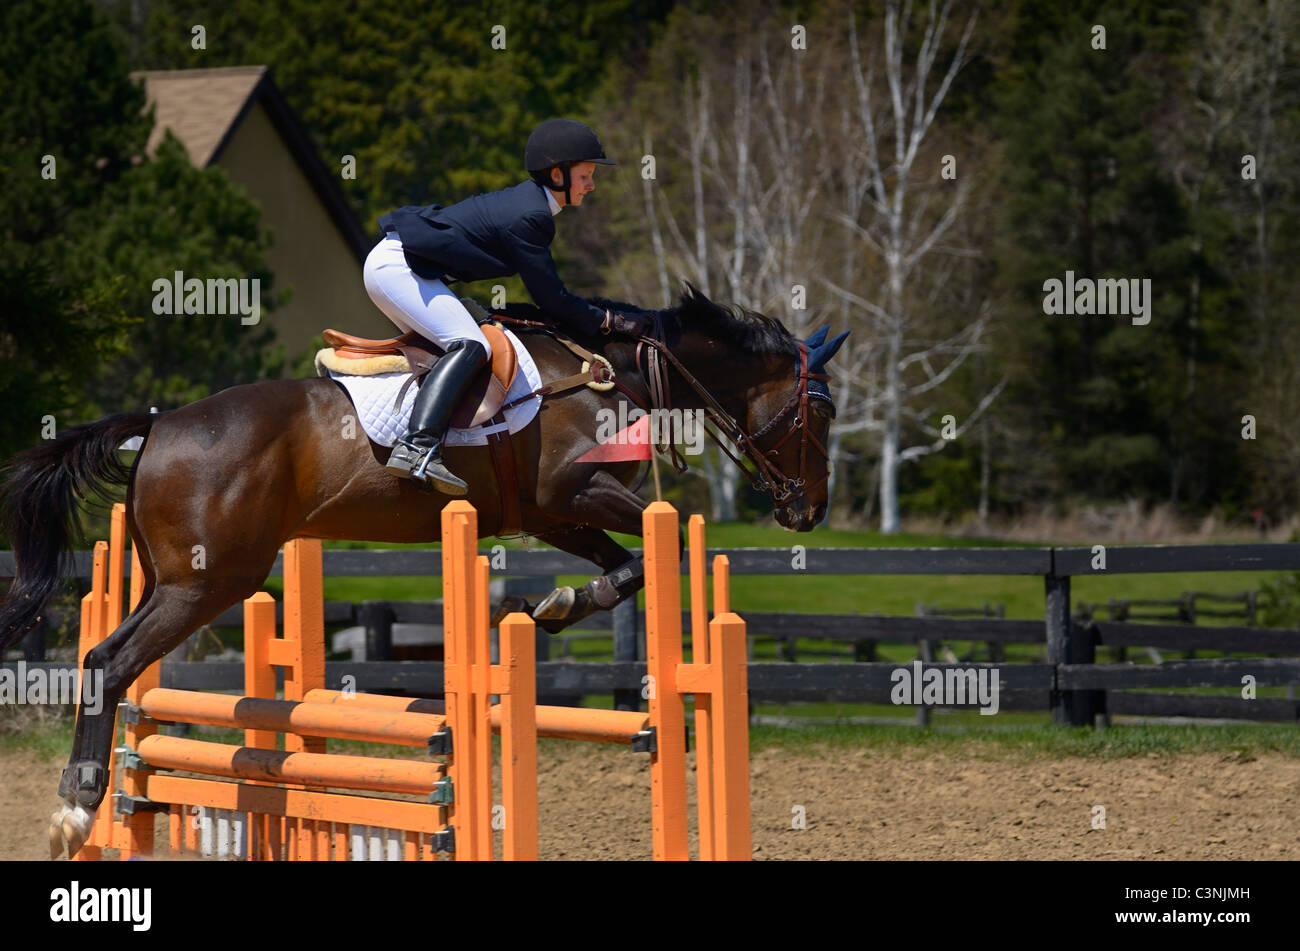 Thoroughbred horse rider jumping over an oxer fence at an outdoor equestrian show competition Ontario - Stock Image